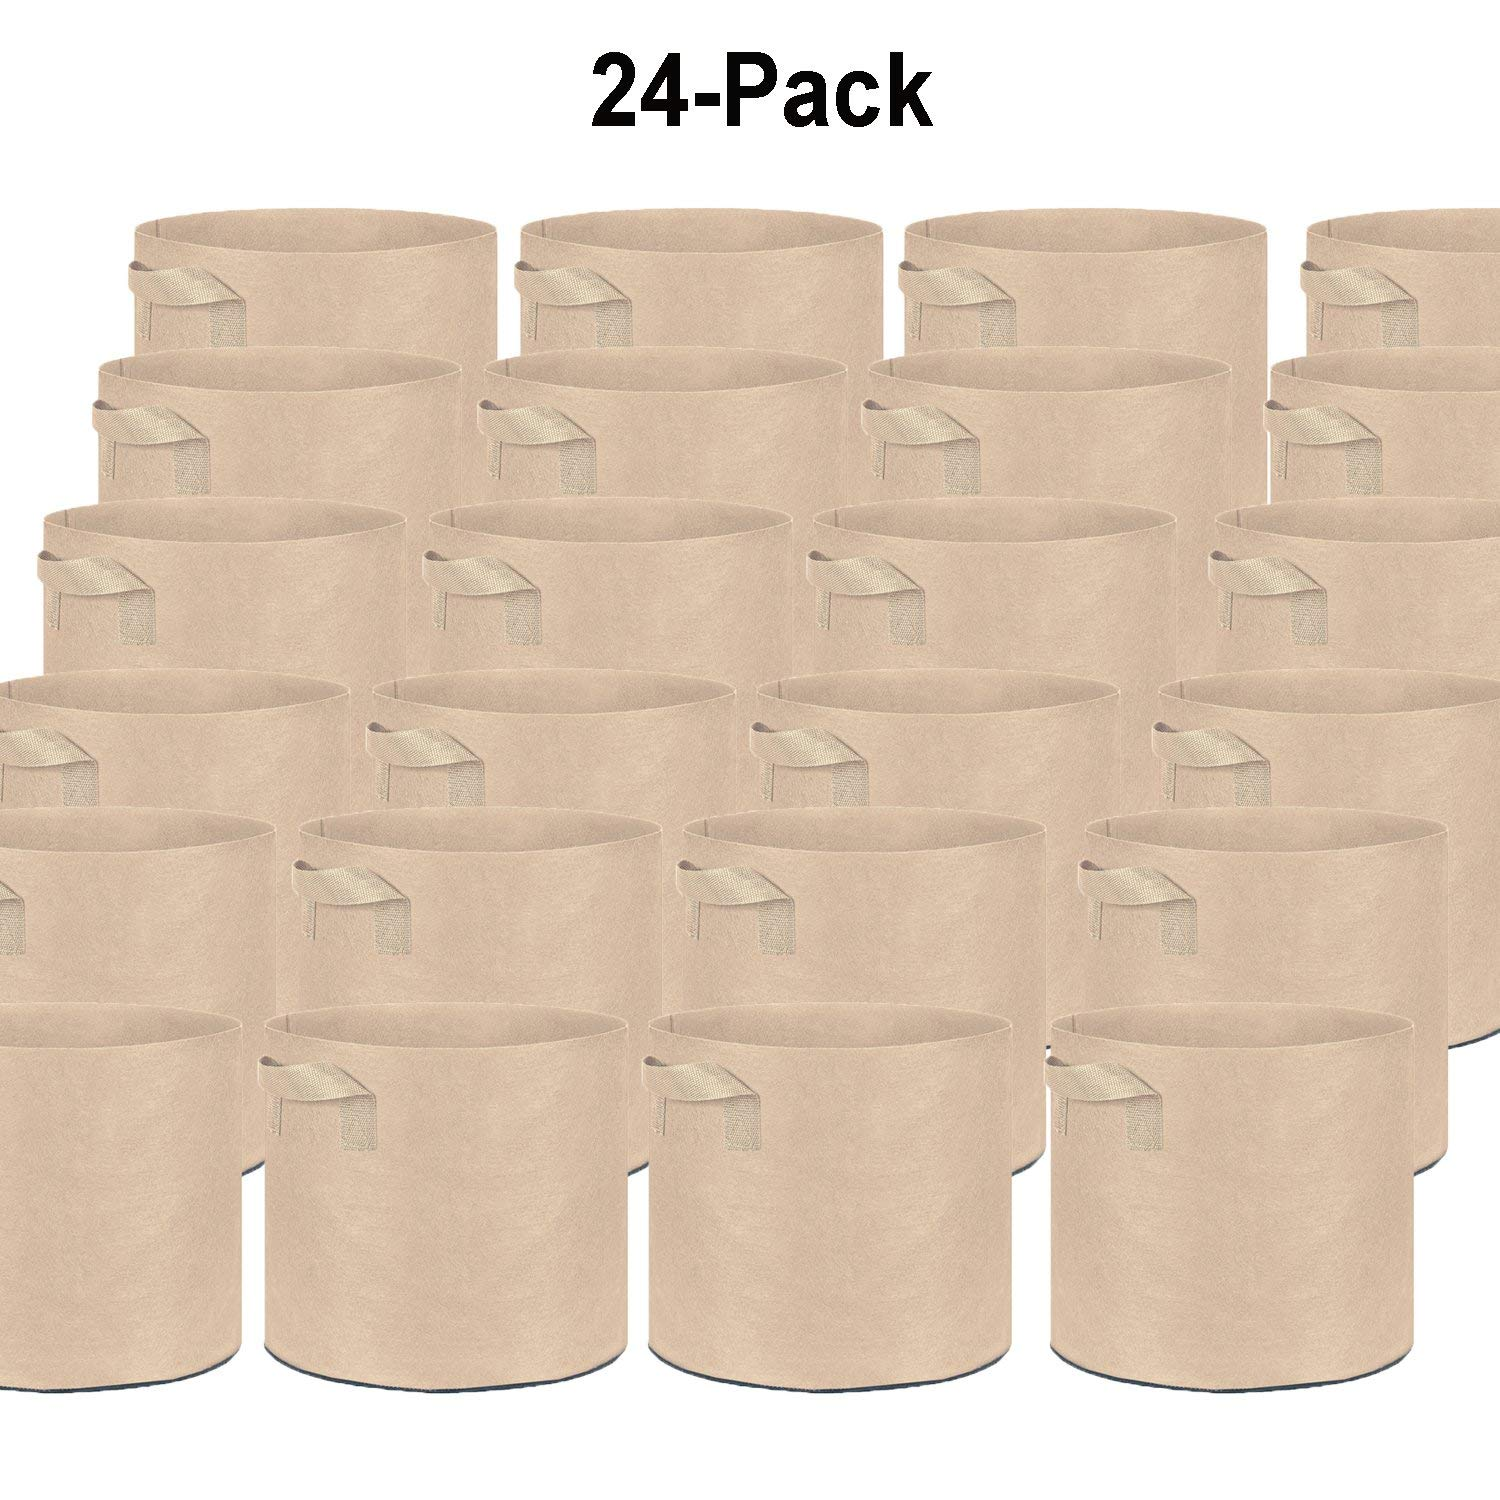 Oppolite 24-Pack 25 Gallon Tan Grow Bags Pots Heavy Duty Fabric Aeration Fabric Pots Grow Bags W/Handles (24, 25 Gallon)